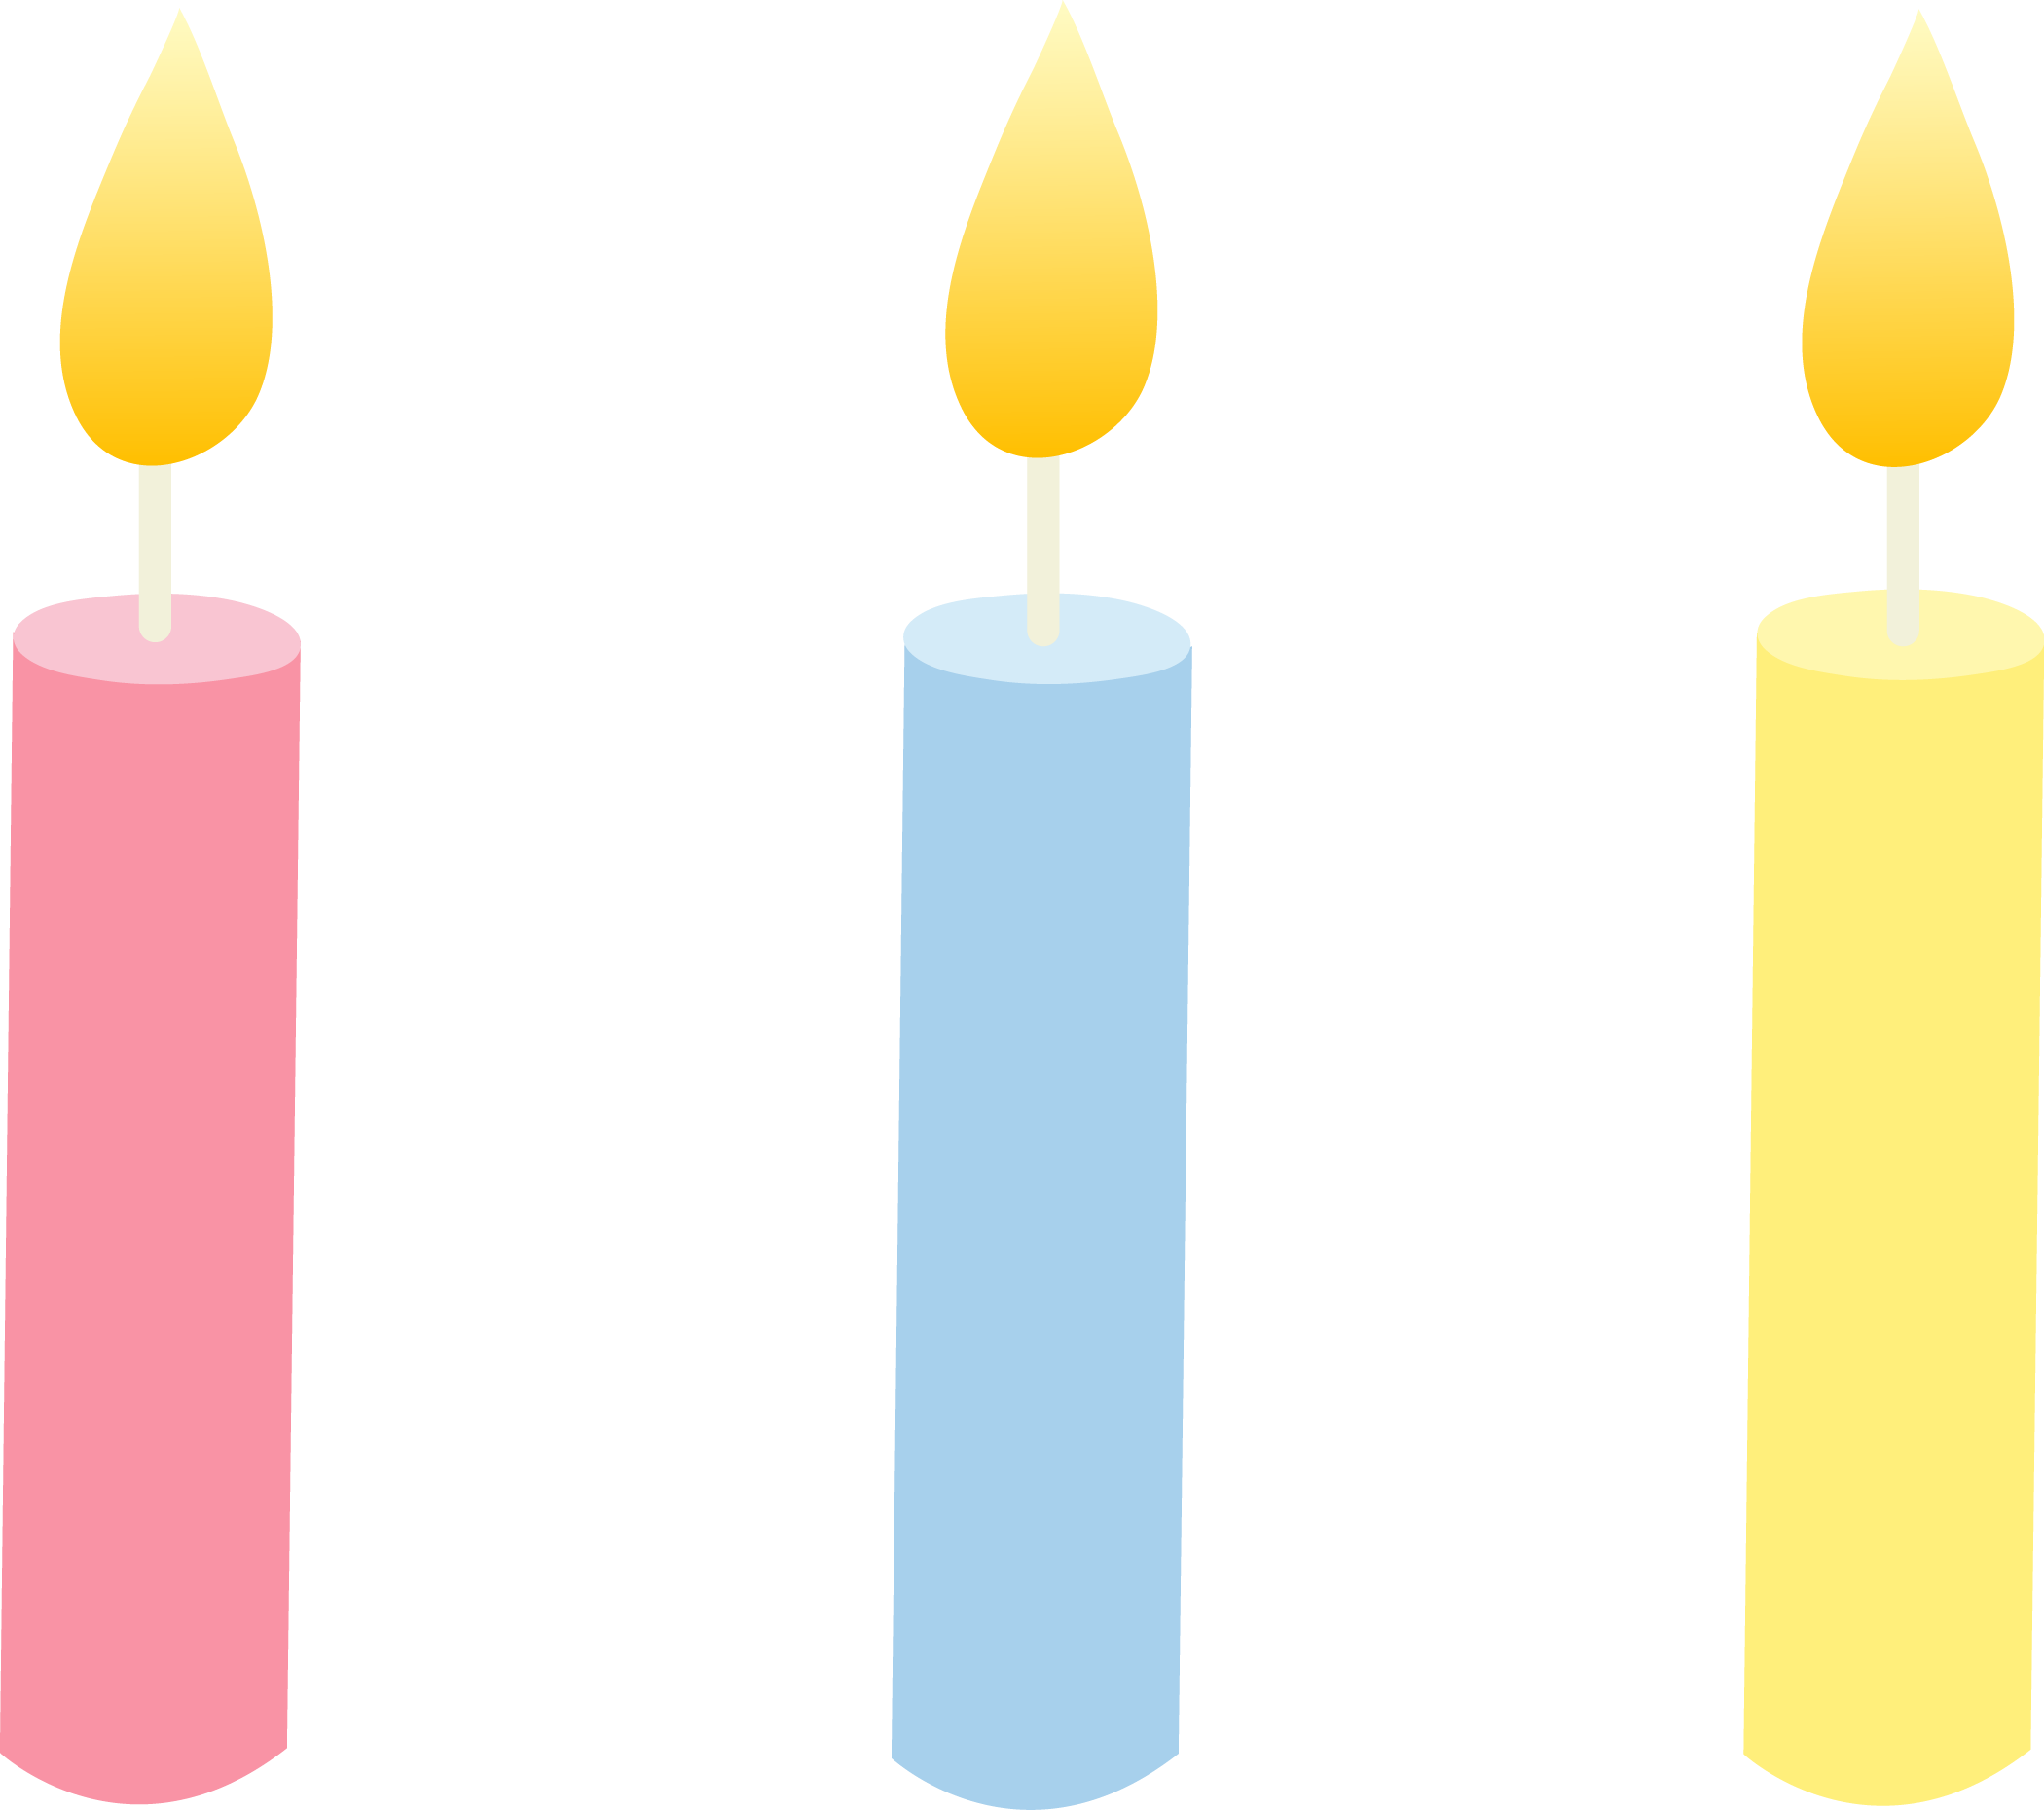 Three Pastel Colored Birthday Candles - Free Clip Art